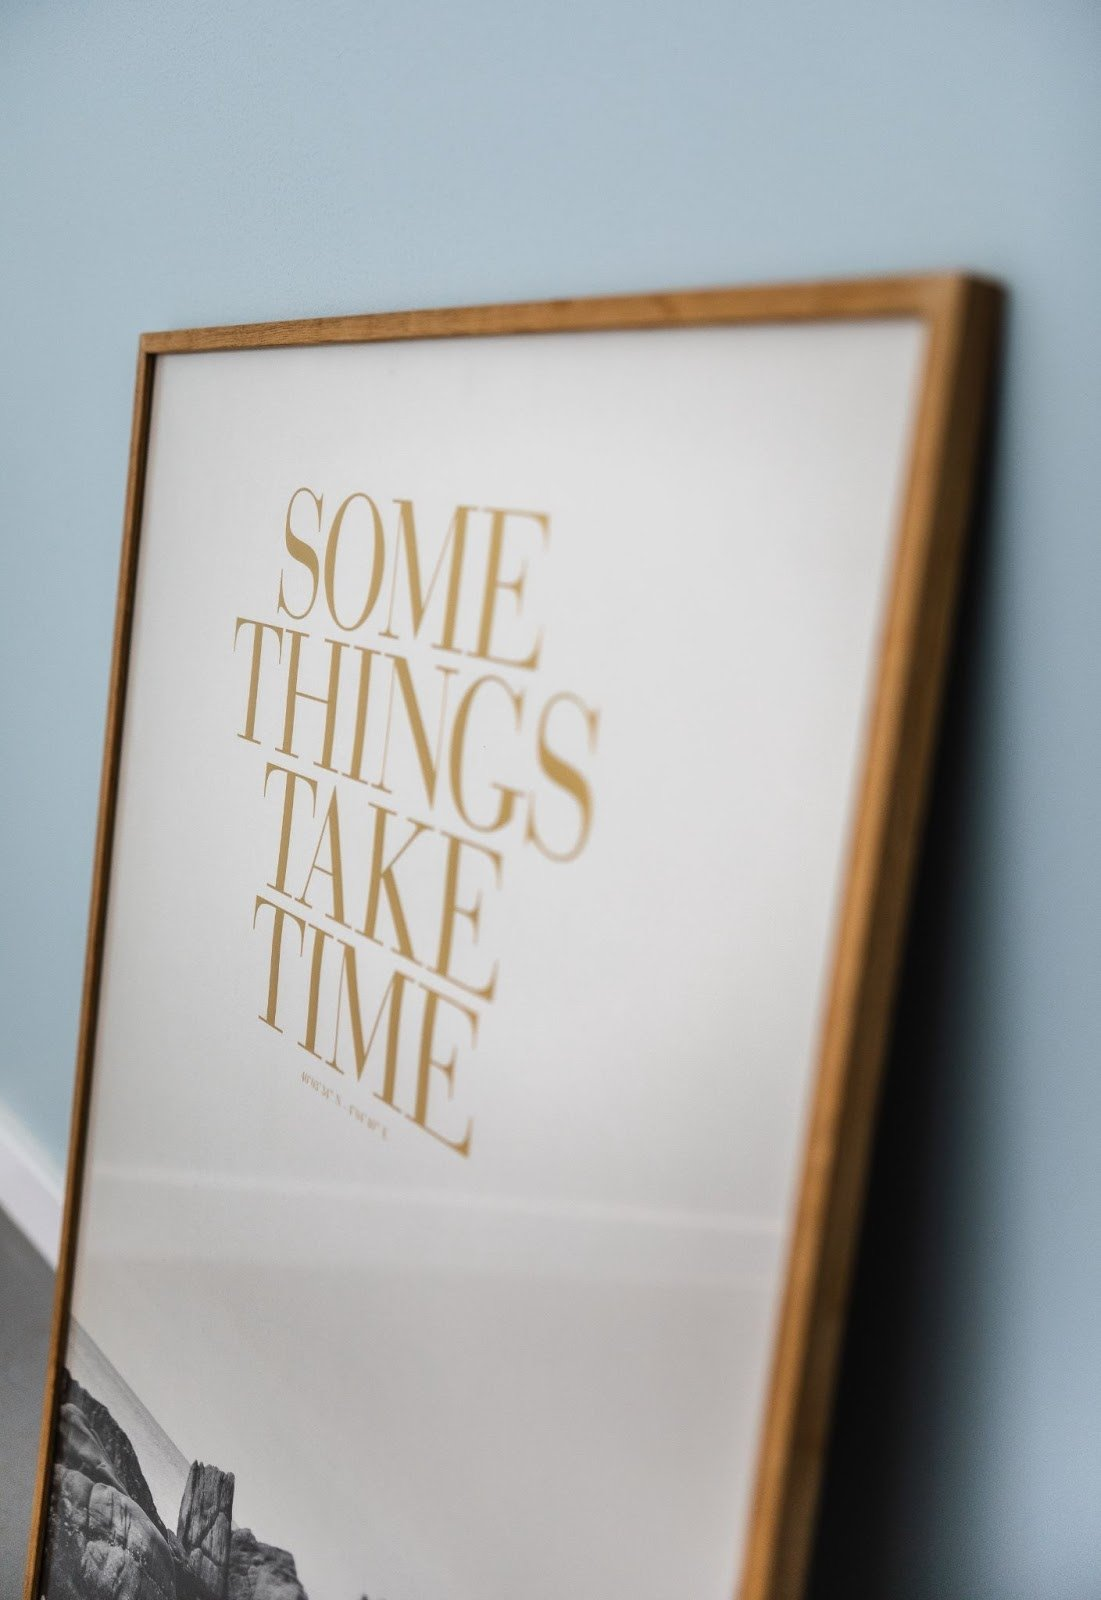 Some things take time picture